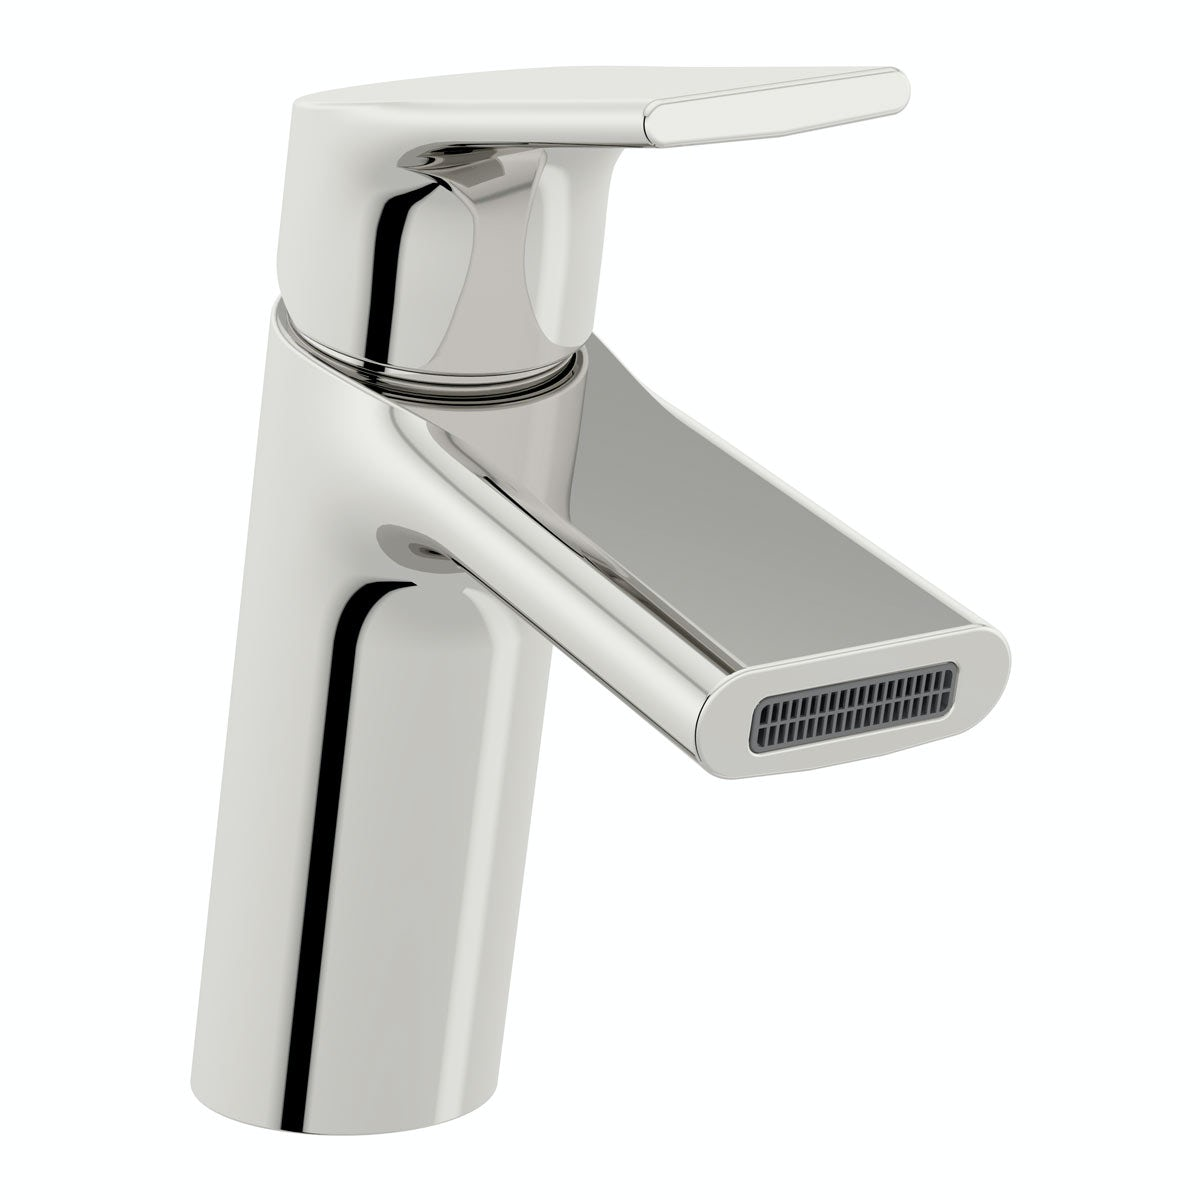 Orchard Purity basin mixer tap